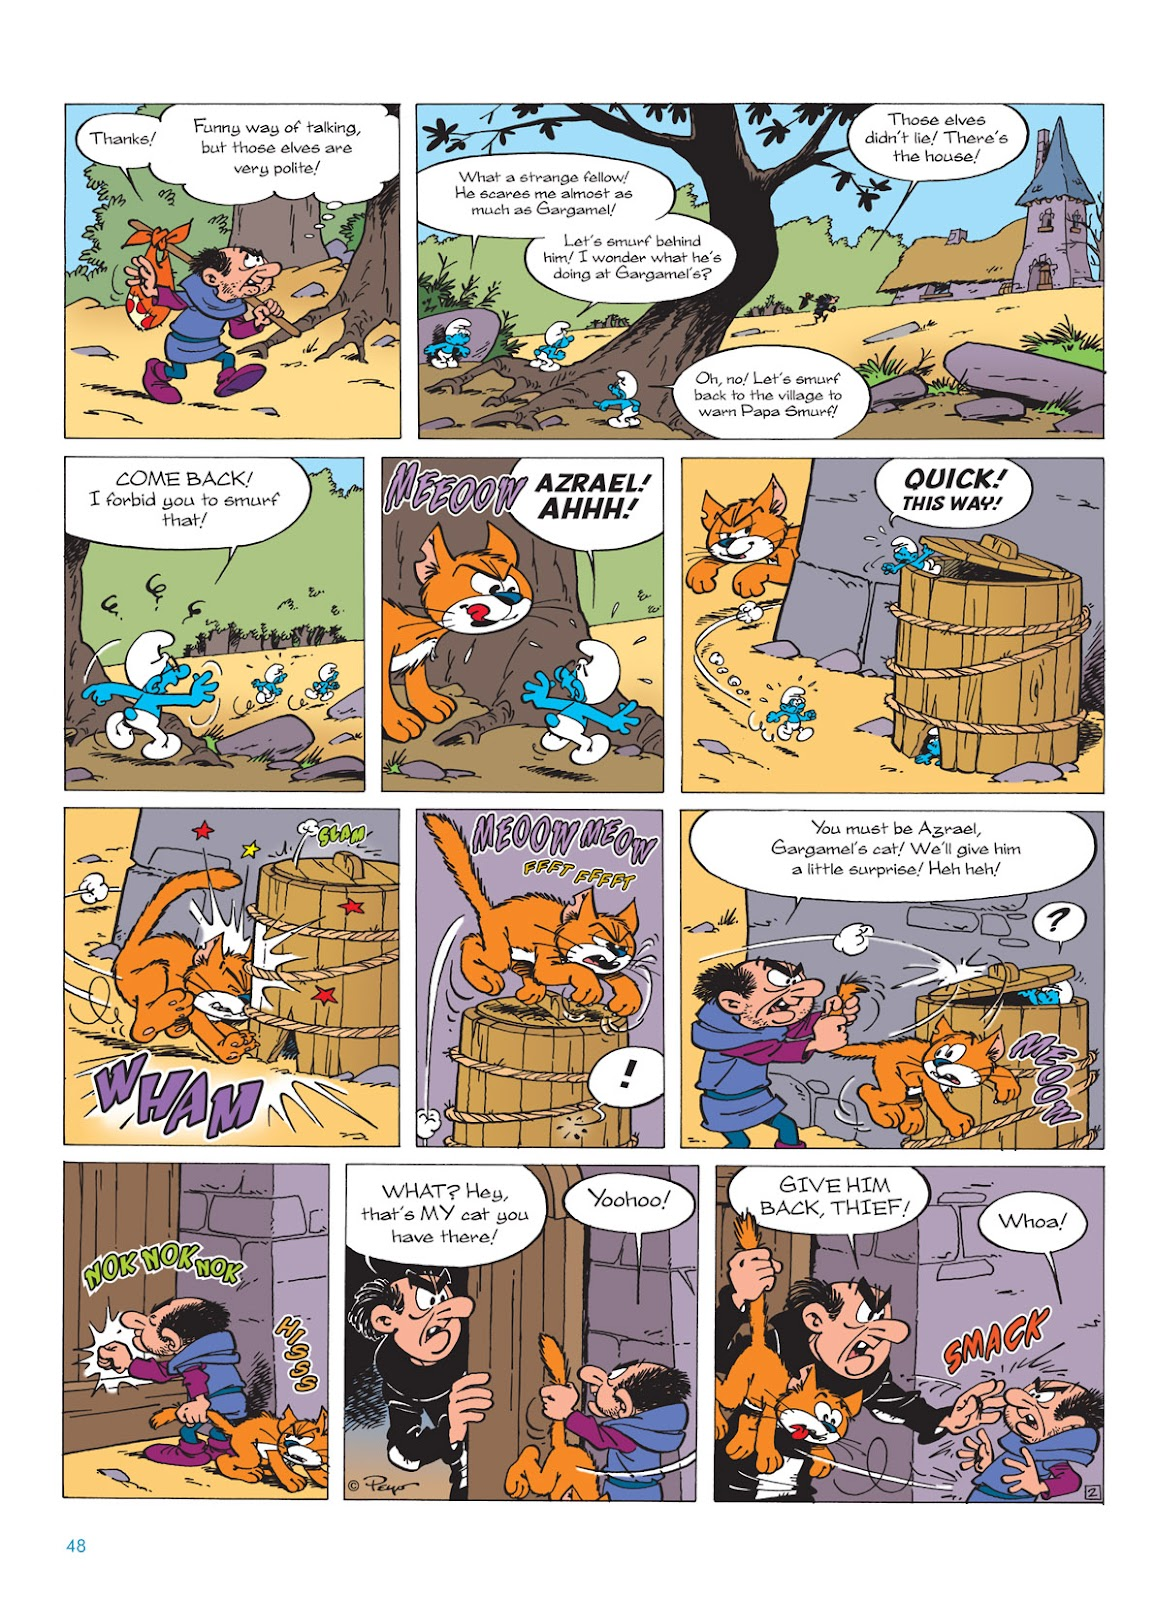 Read online The Smurfs comic -  Issue #9 - 48